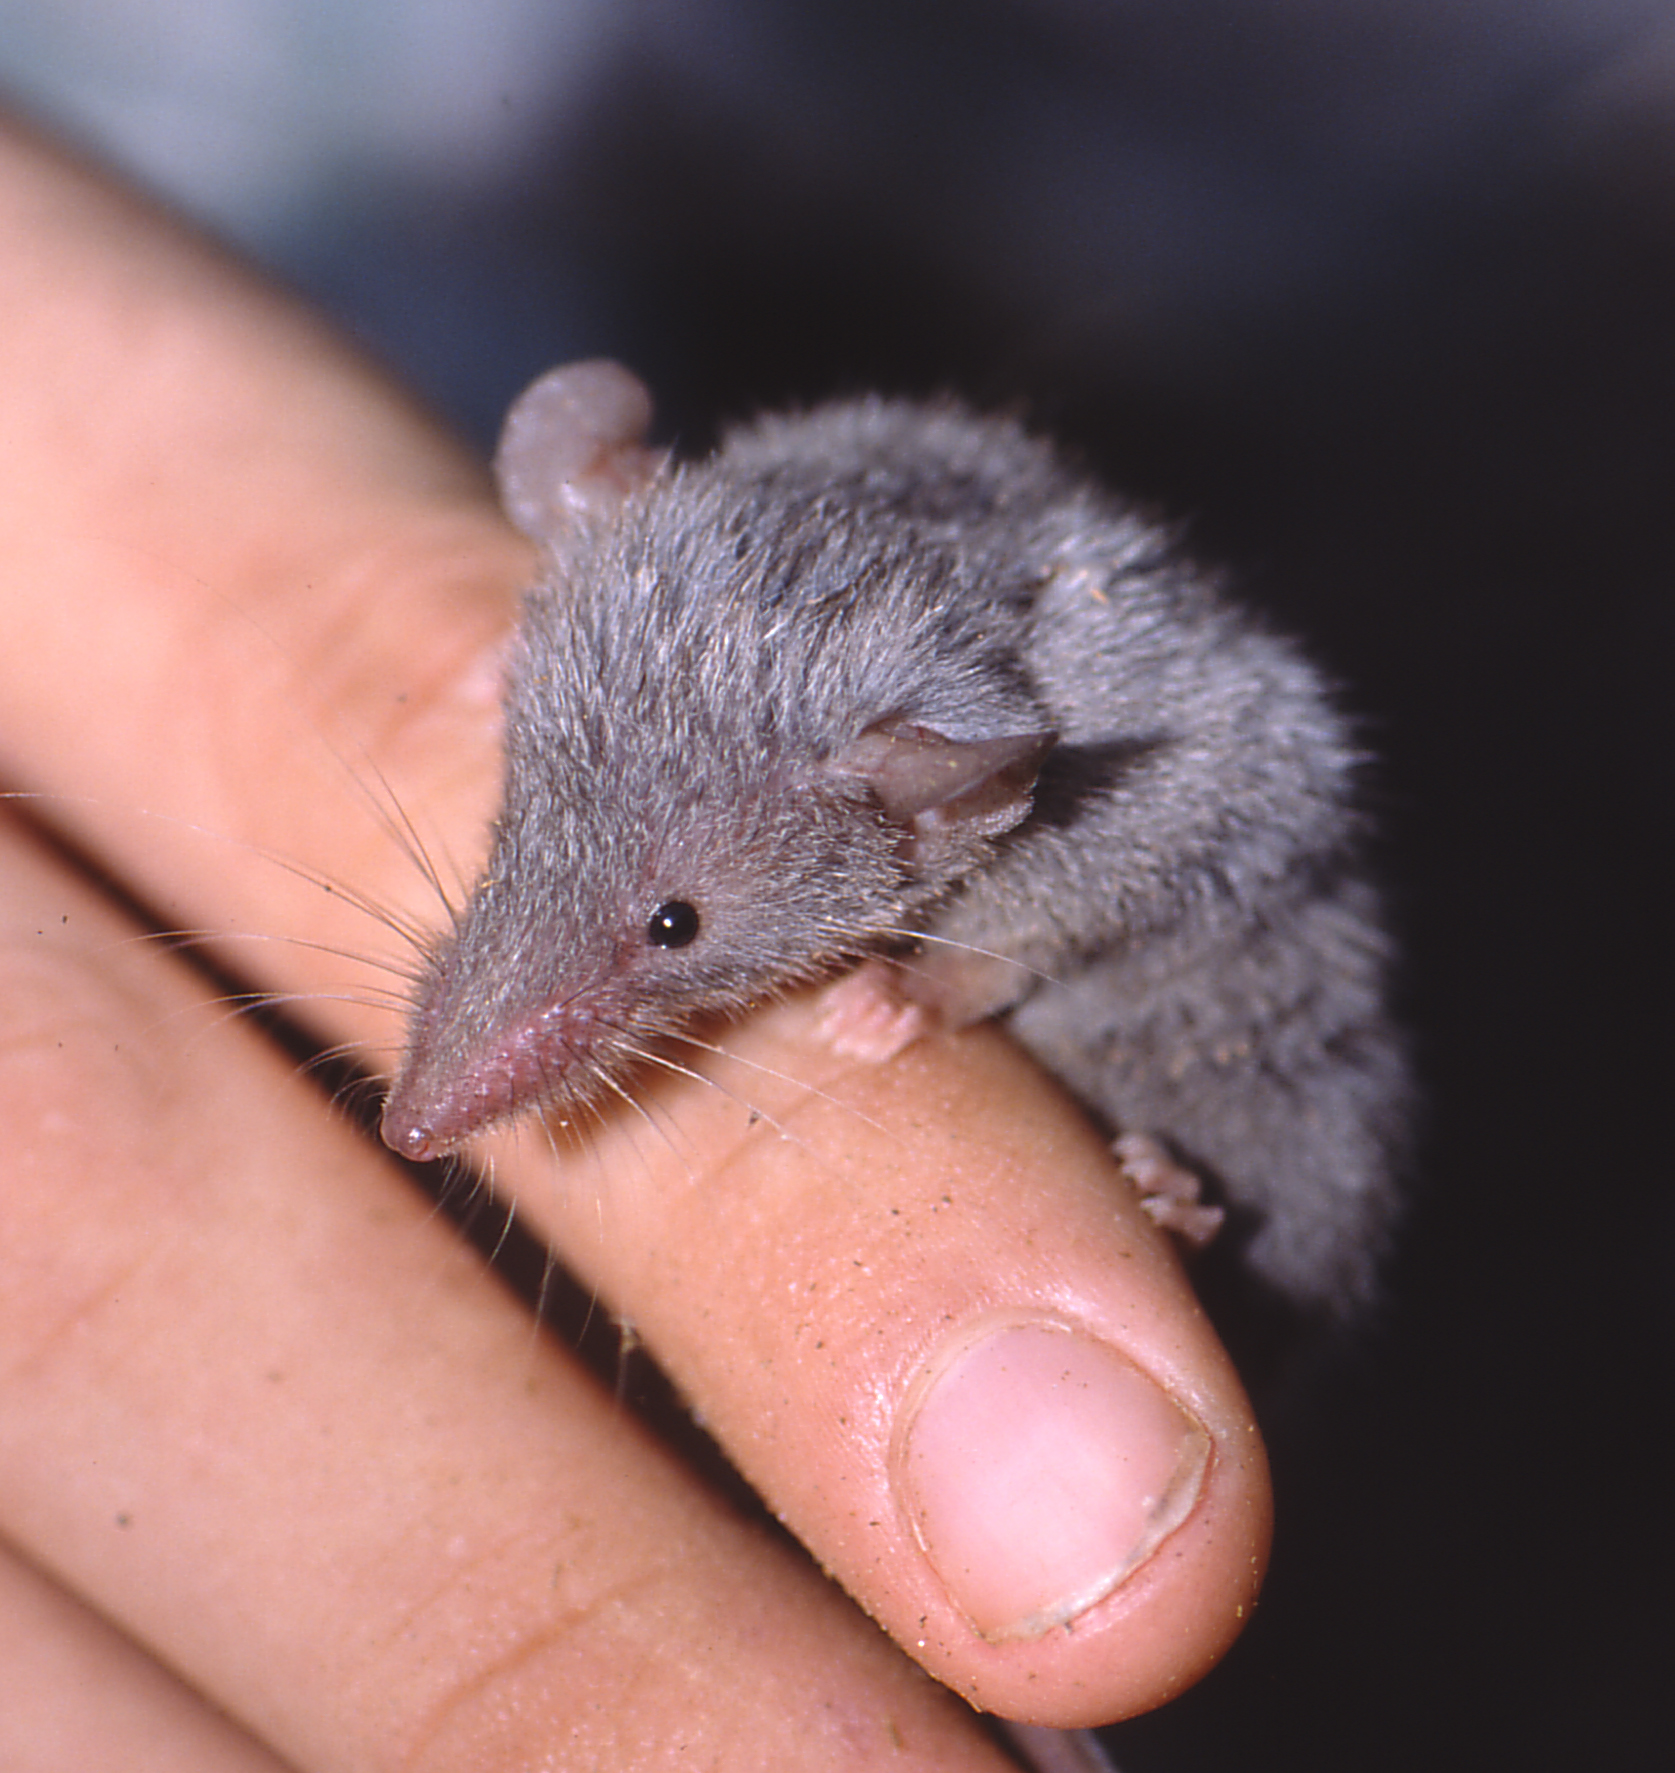 One of the many ecologically similar shrew tenrecs, Microgale brevicauda.